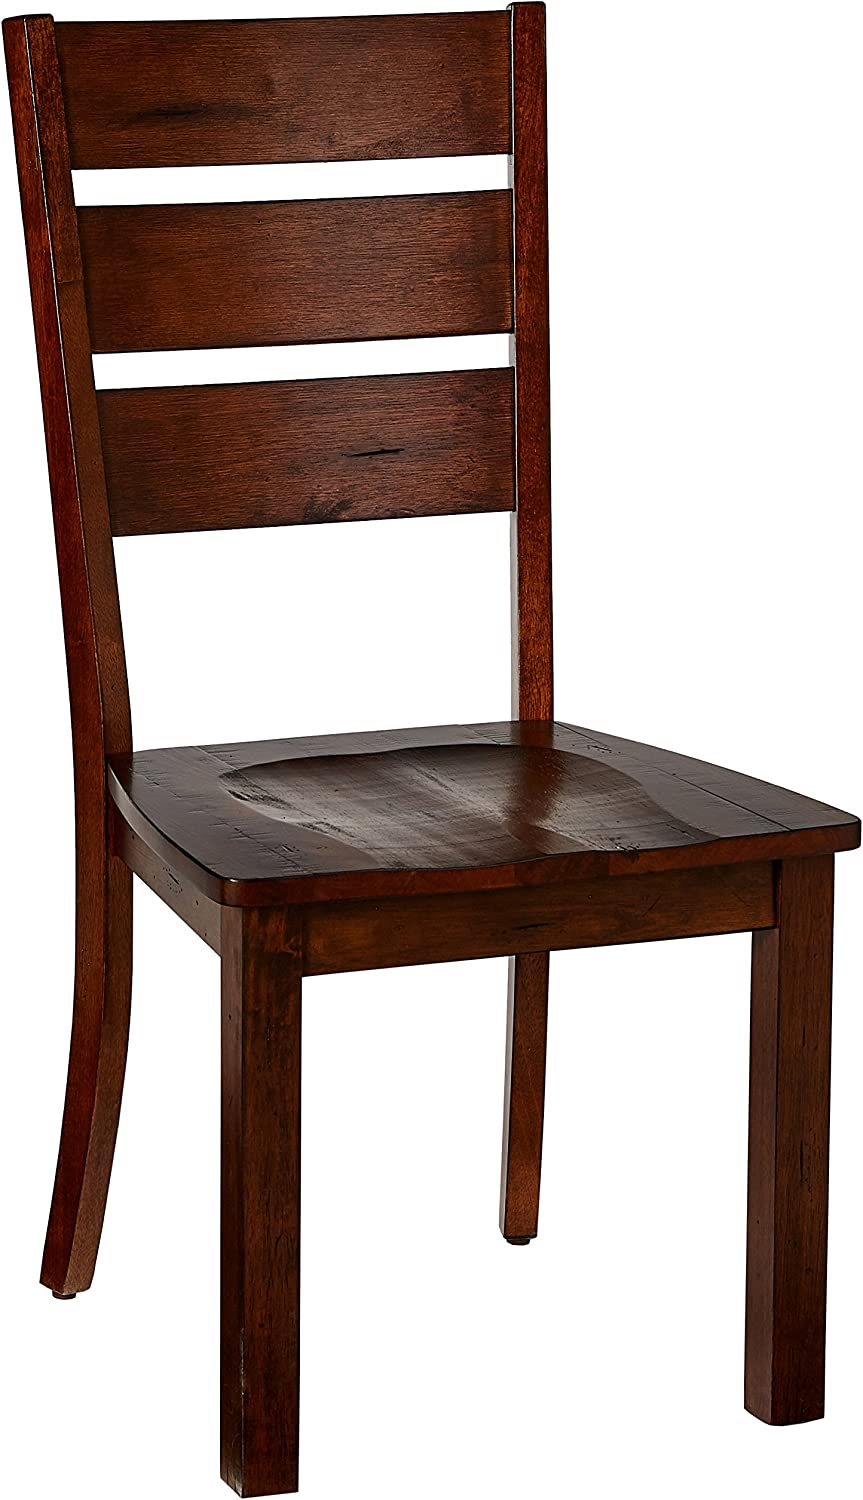 Simmons Casegoods Dining Chair, Burnished Oak